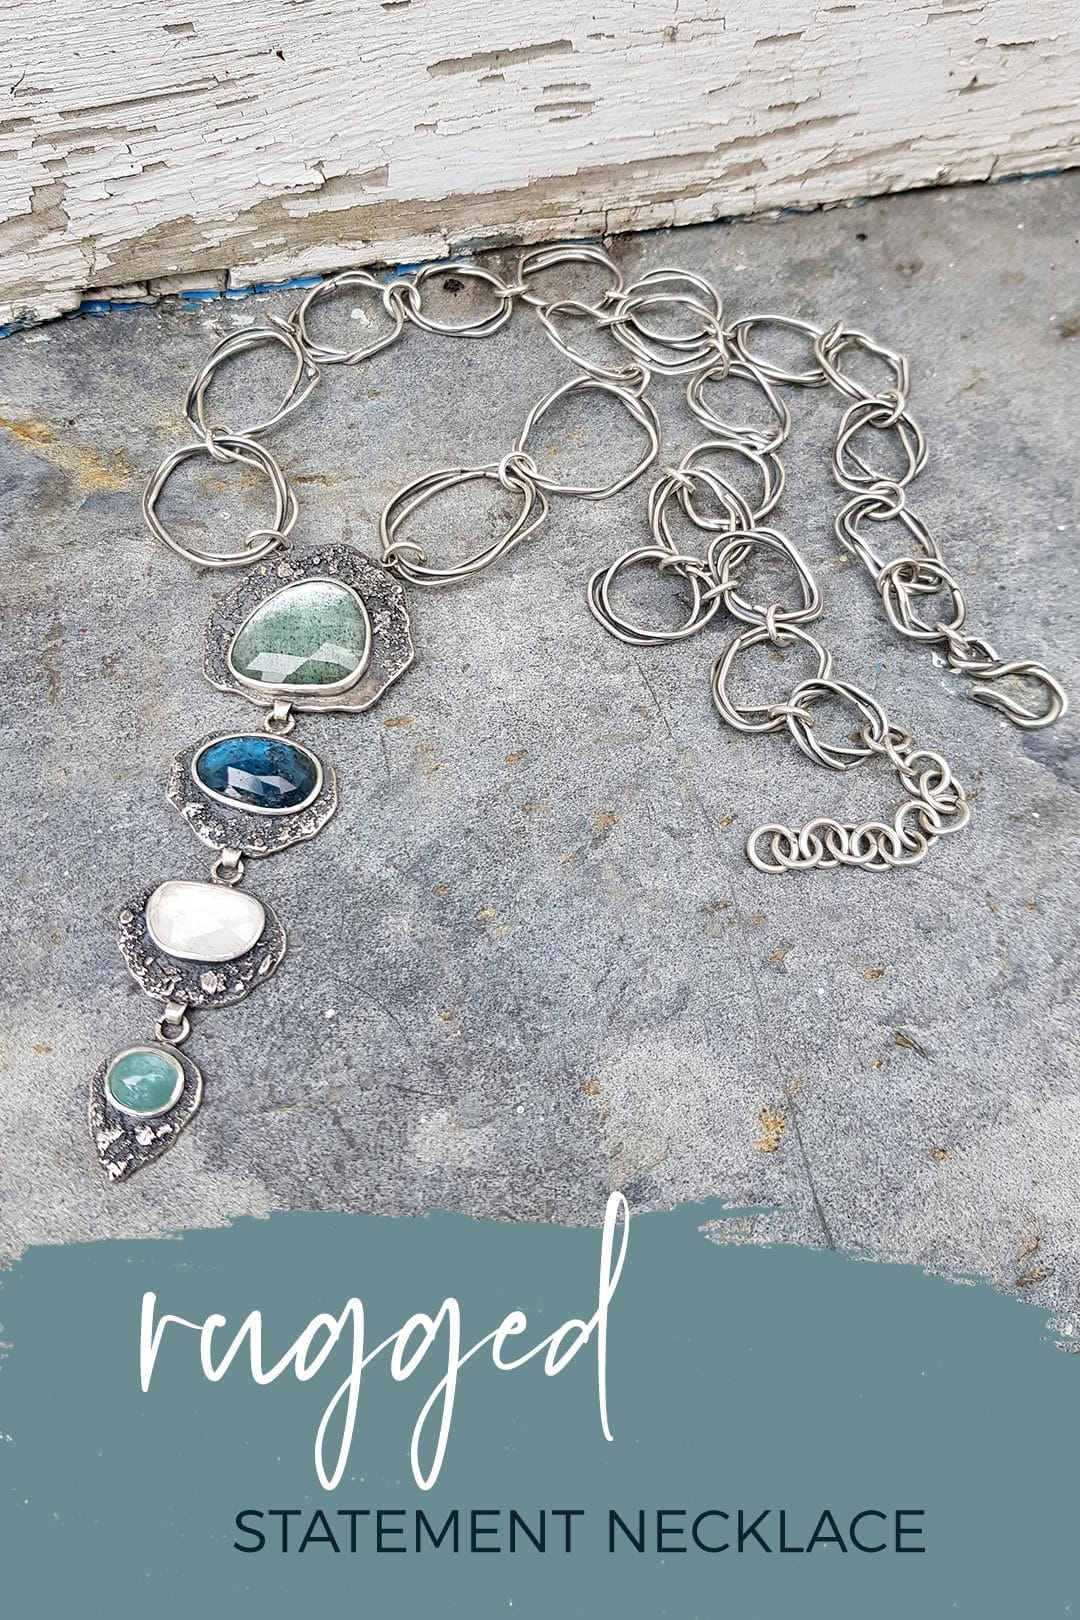 Rugged statement necklace with coastal coloured gemstones and textured silver